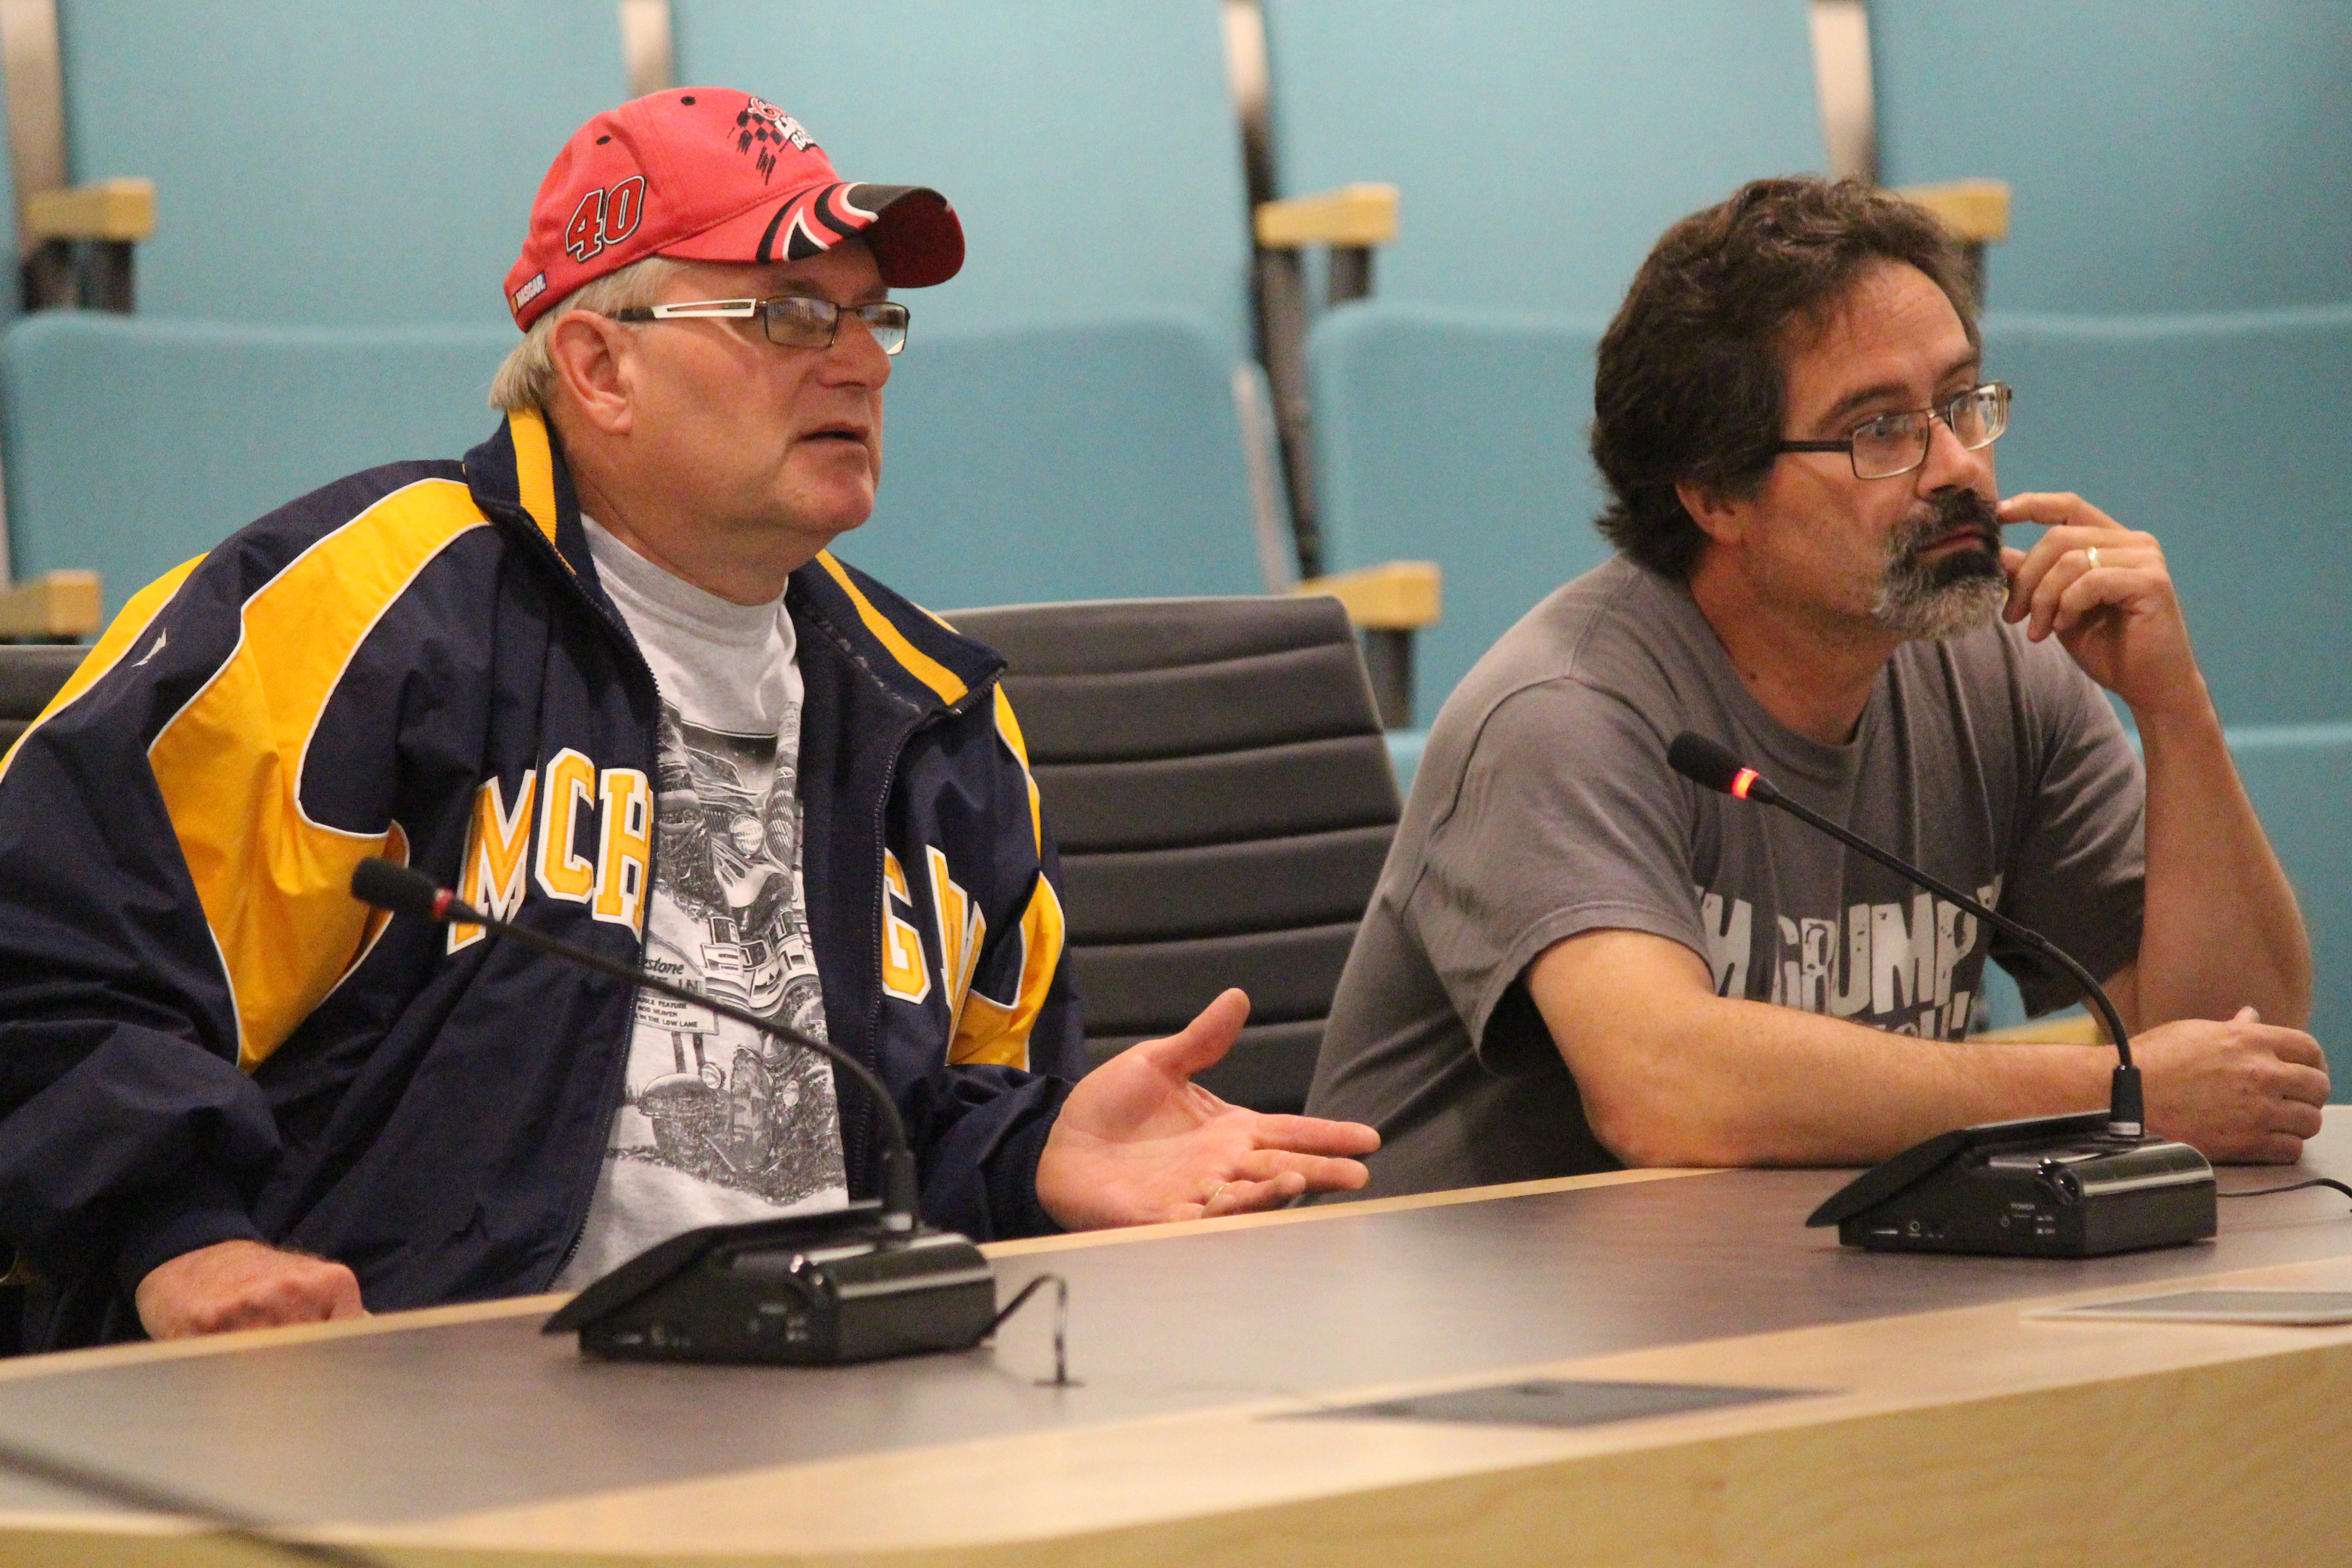 Rick Howson, left, and Karl Grymonprez appear before Essex council with flood concerns on Iler Ave., June 1, 2015. (Photo by Jason Viau)